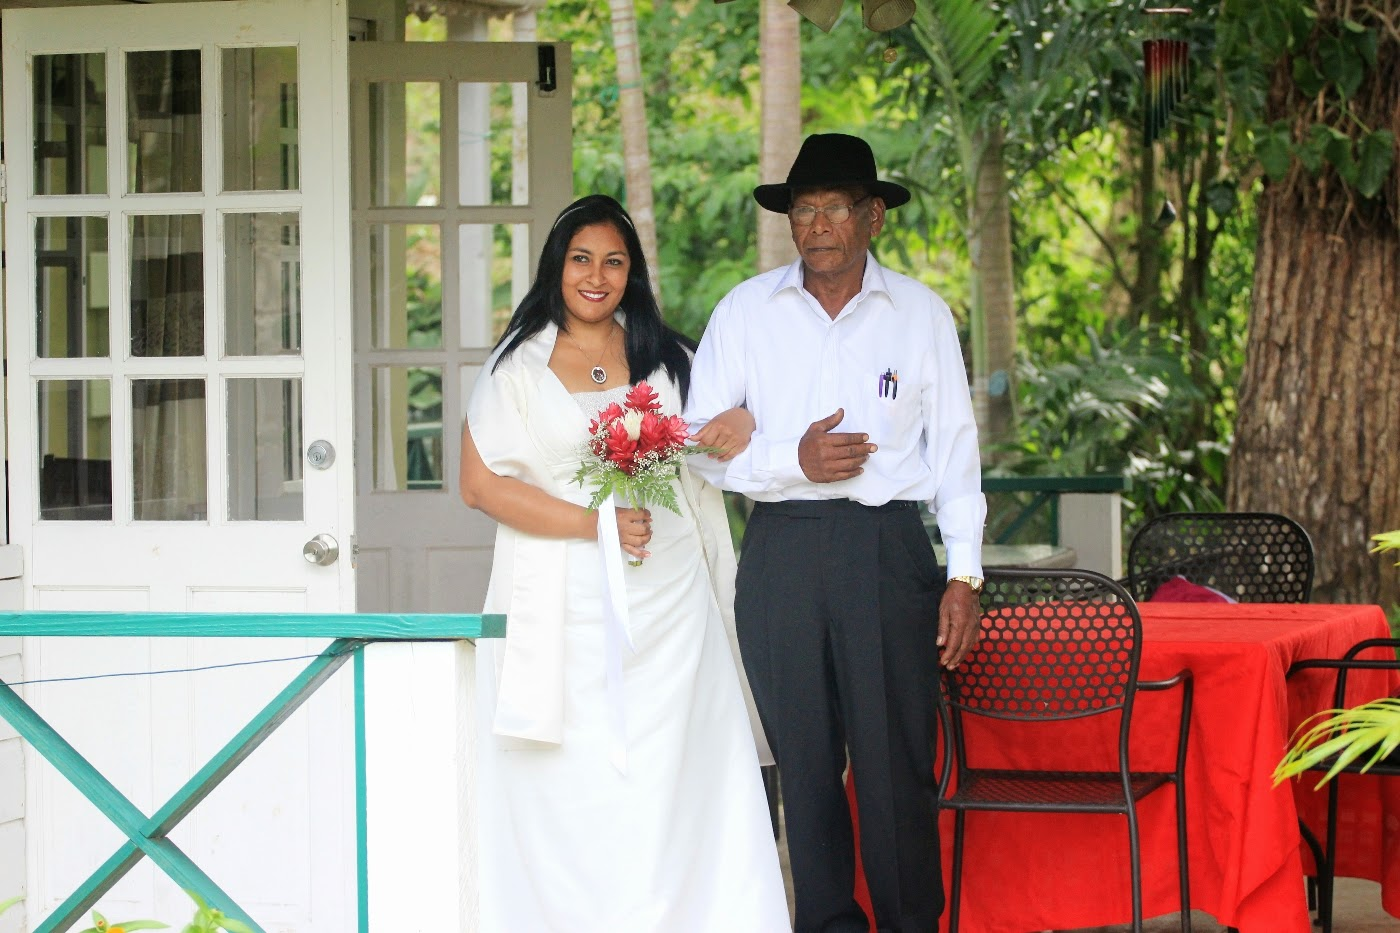 Abroad private weddings